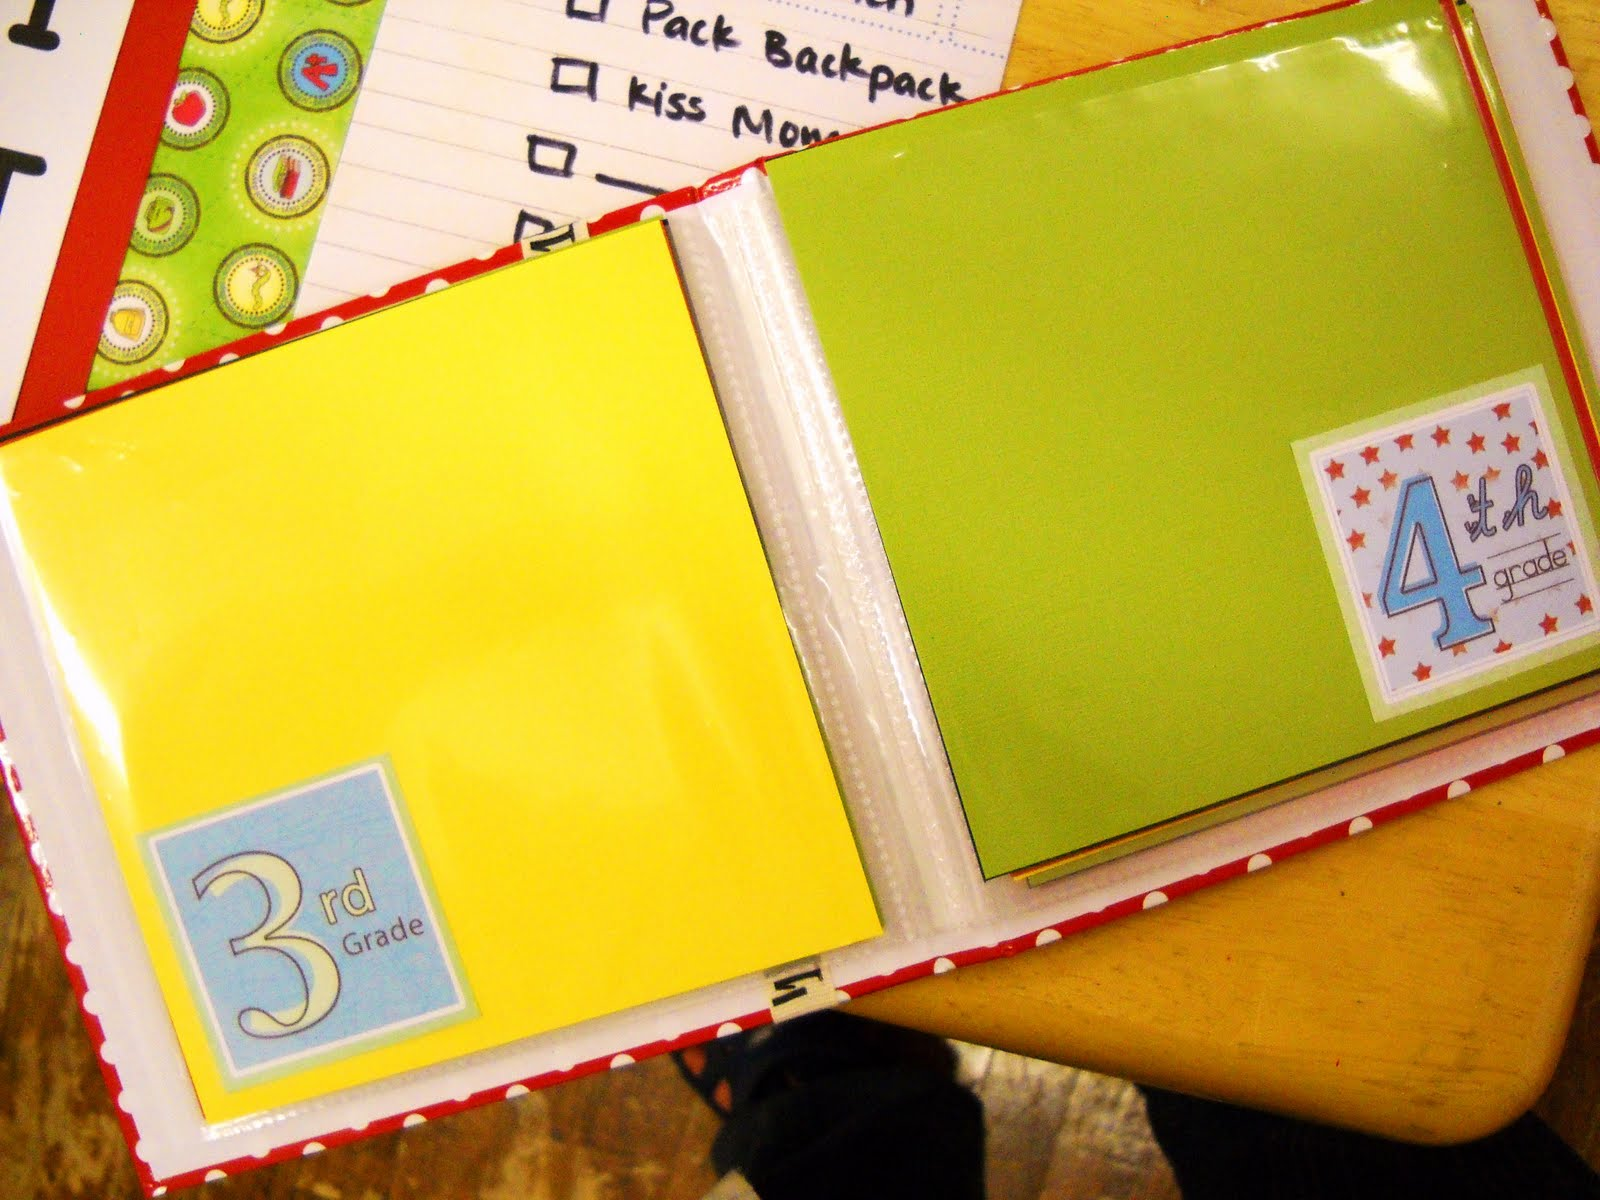 How to make scrapbook for school project - This Is A Simple Scrapbook That Was One Piece Of Patterned Paper From Adornit I Cut Card Stock 6 X 6 And Then Cut The Patterned Paper Into Squares And